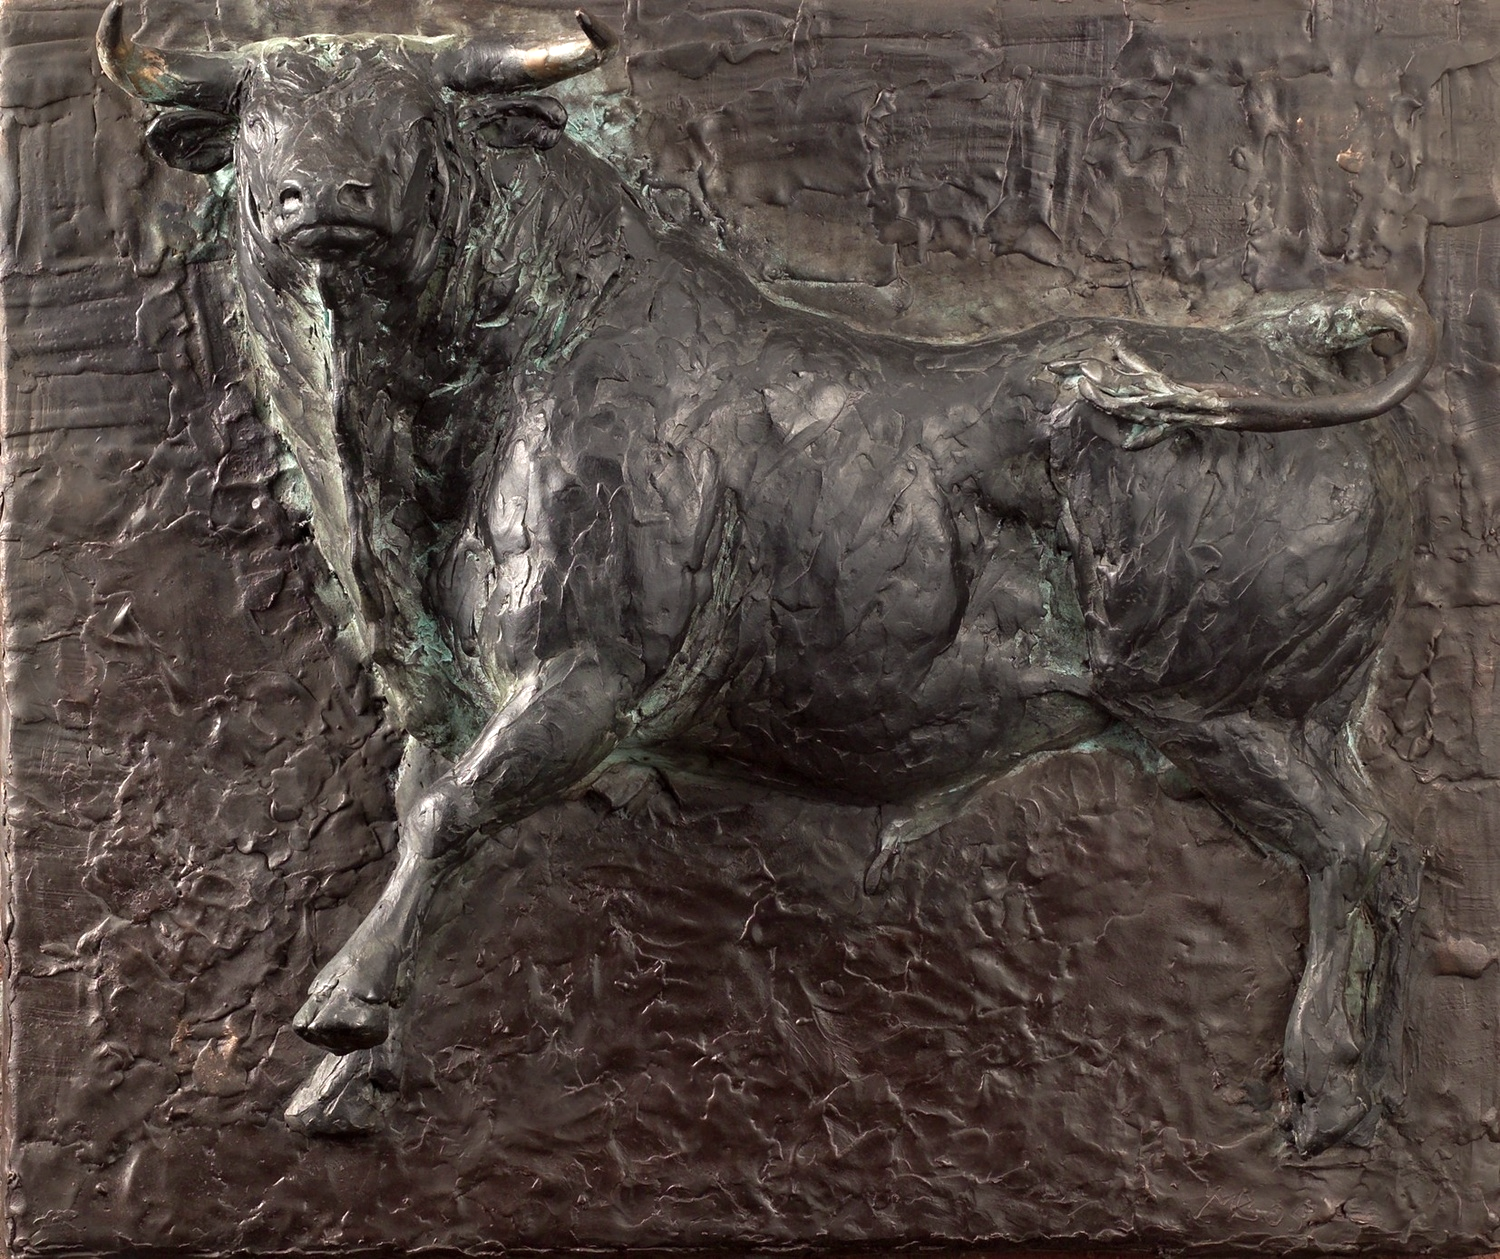 Bronze relief sculpture presented as a gift by the staff of Gosschalk & Zn